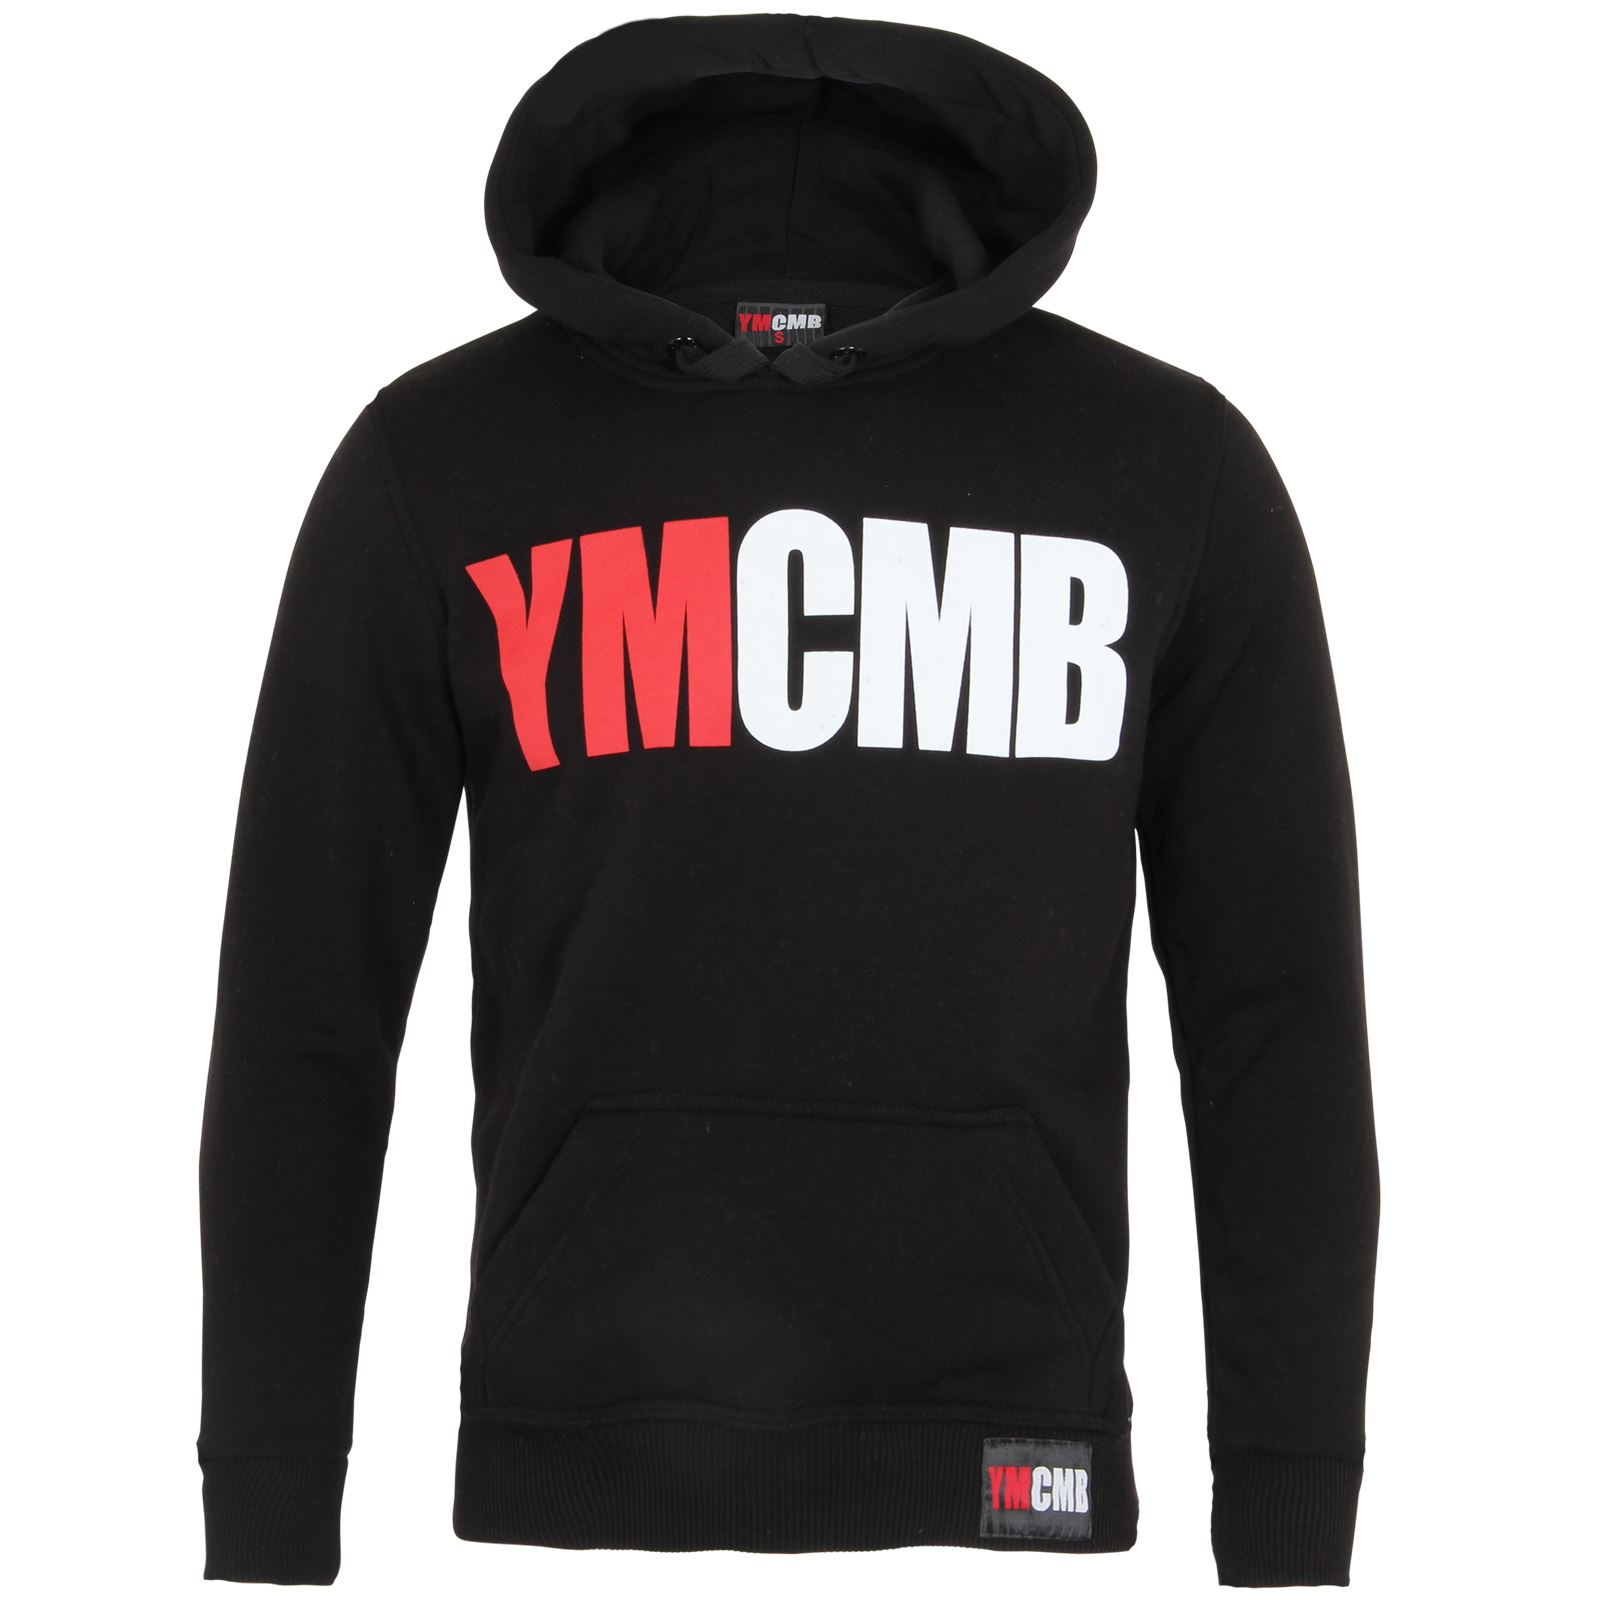 Ymcmb Clothing Amazon 108